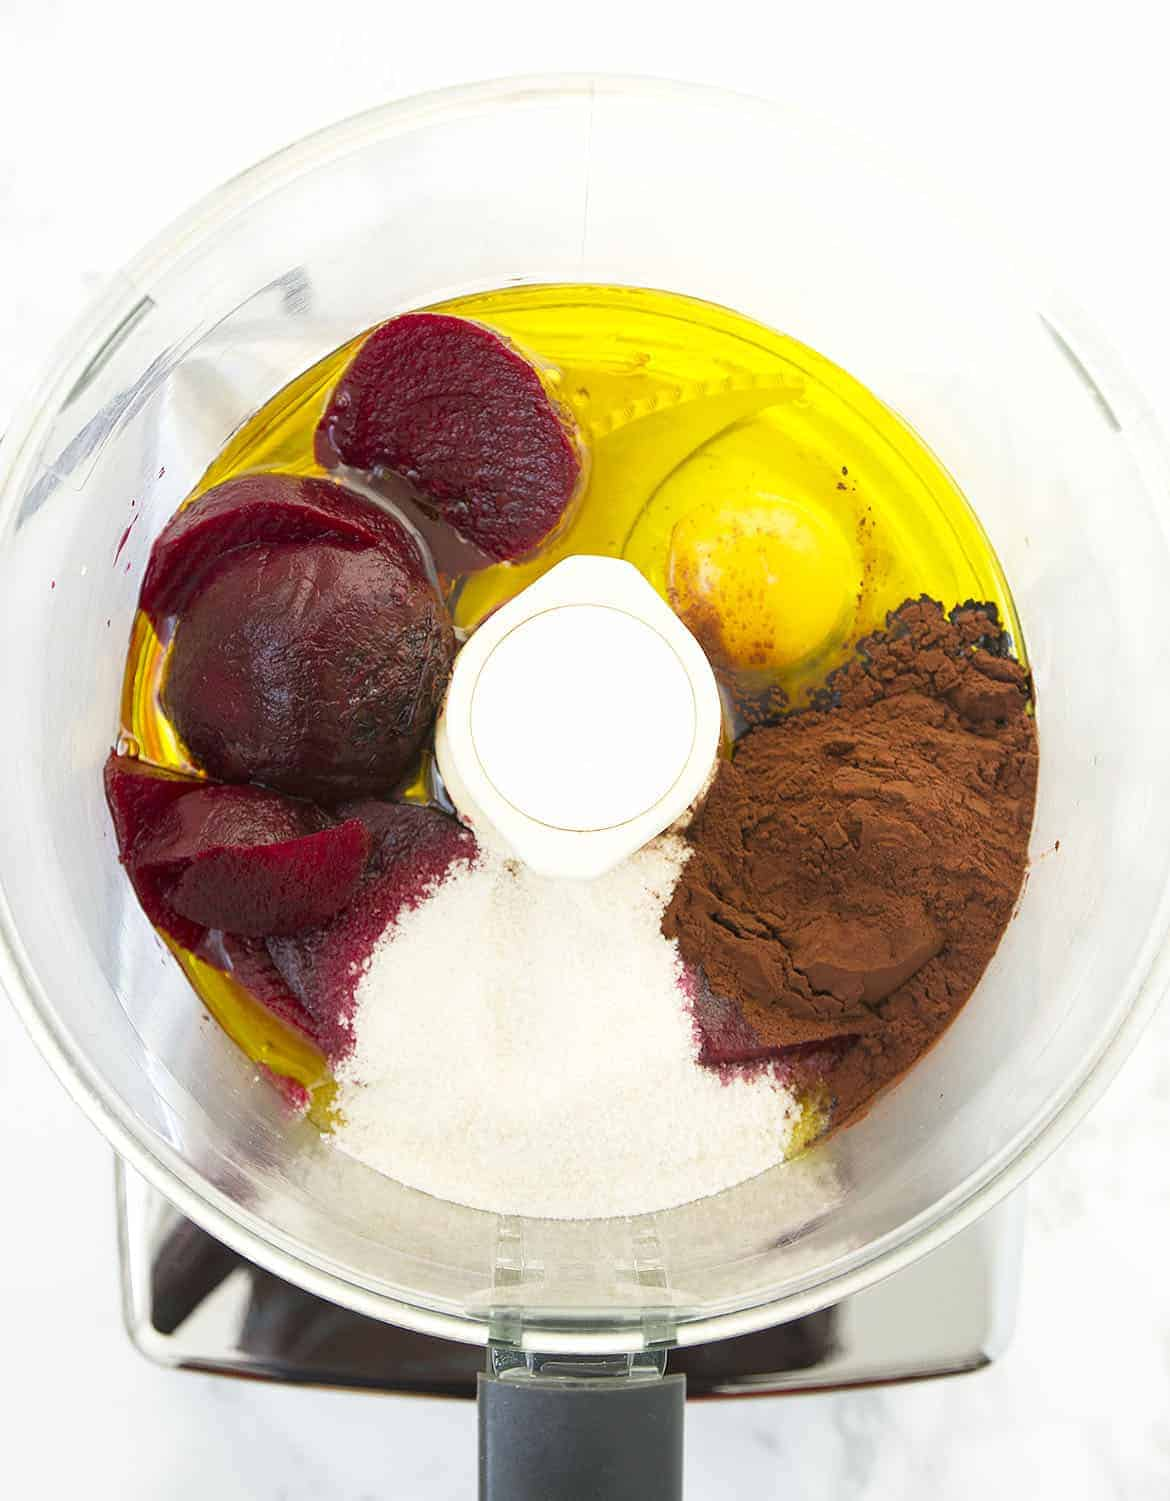 Beetroots, egg, sugar, oil and cocoa powder into a food processor.